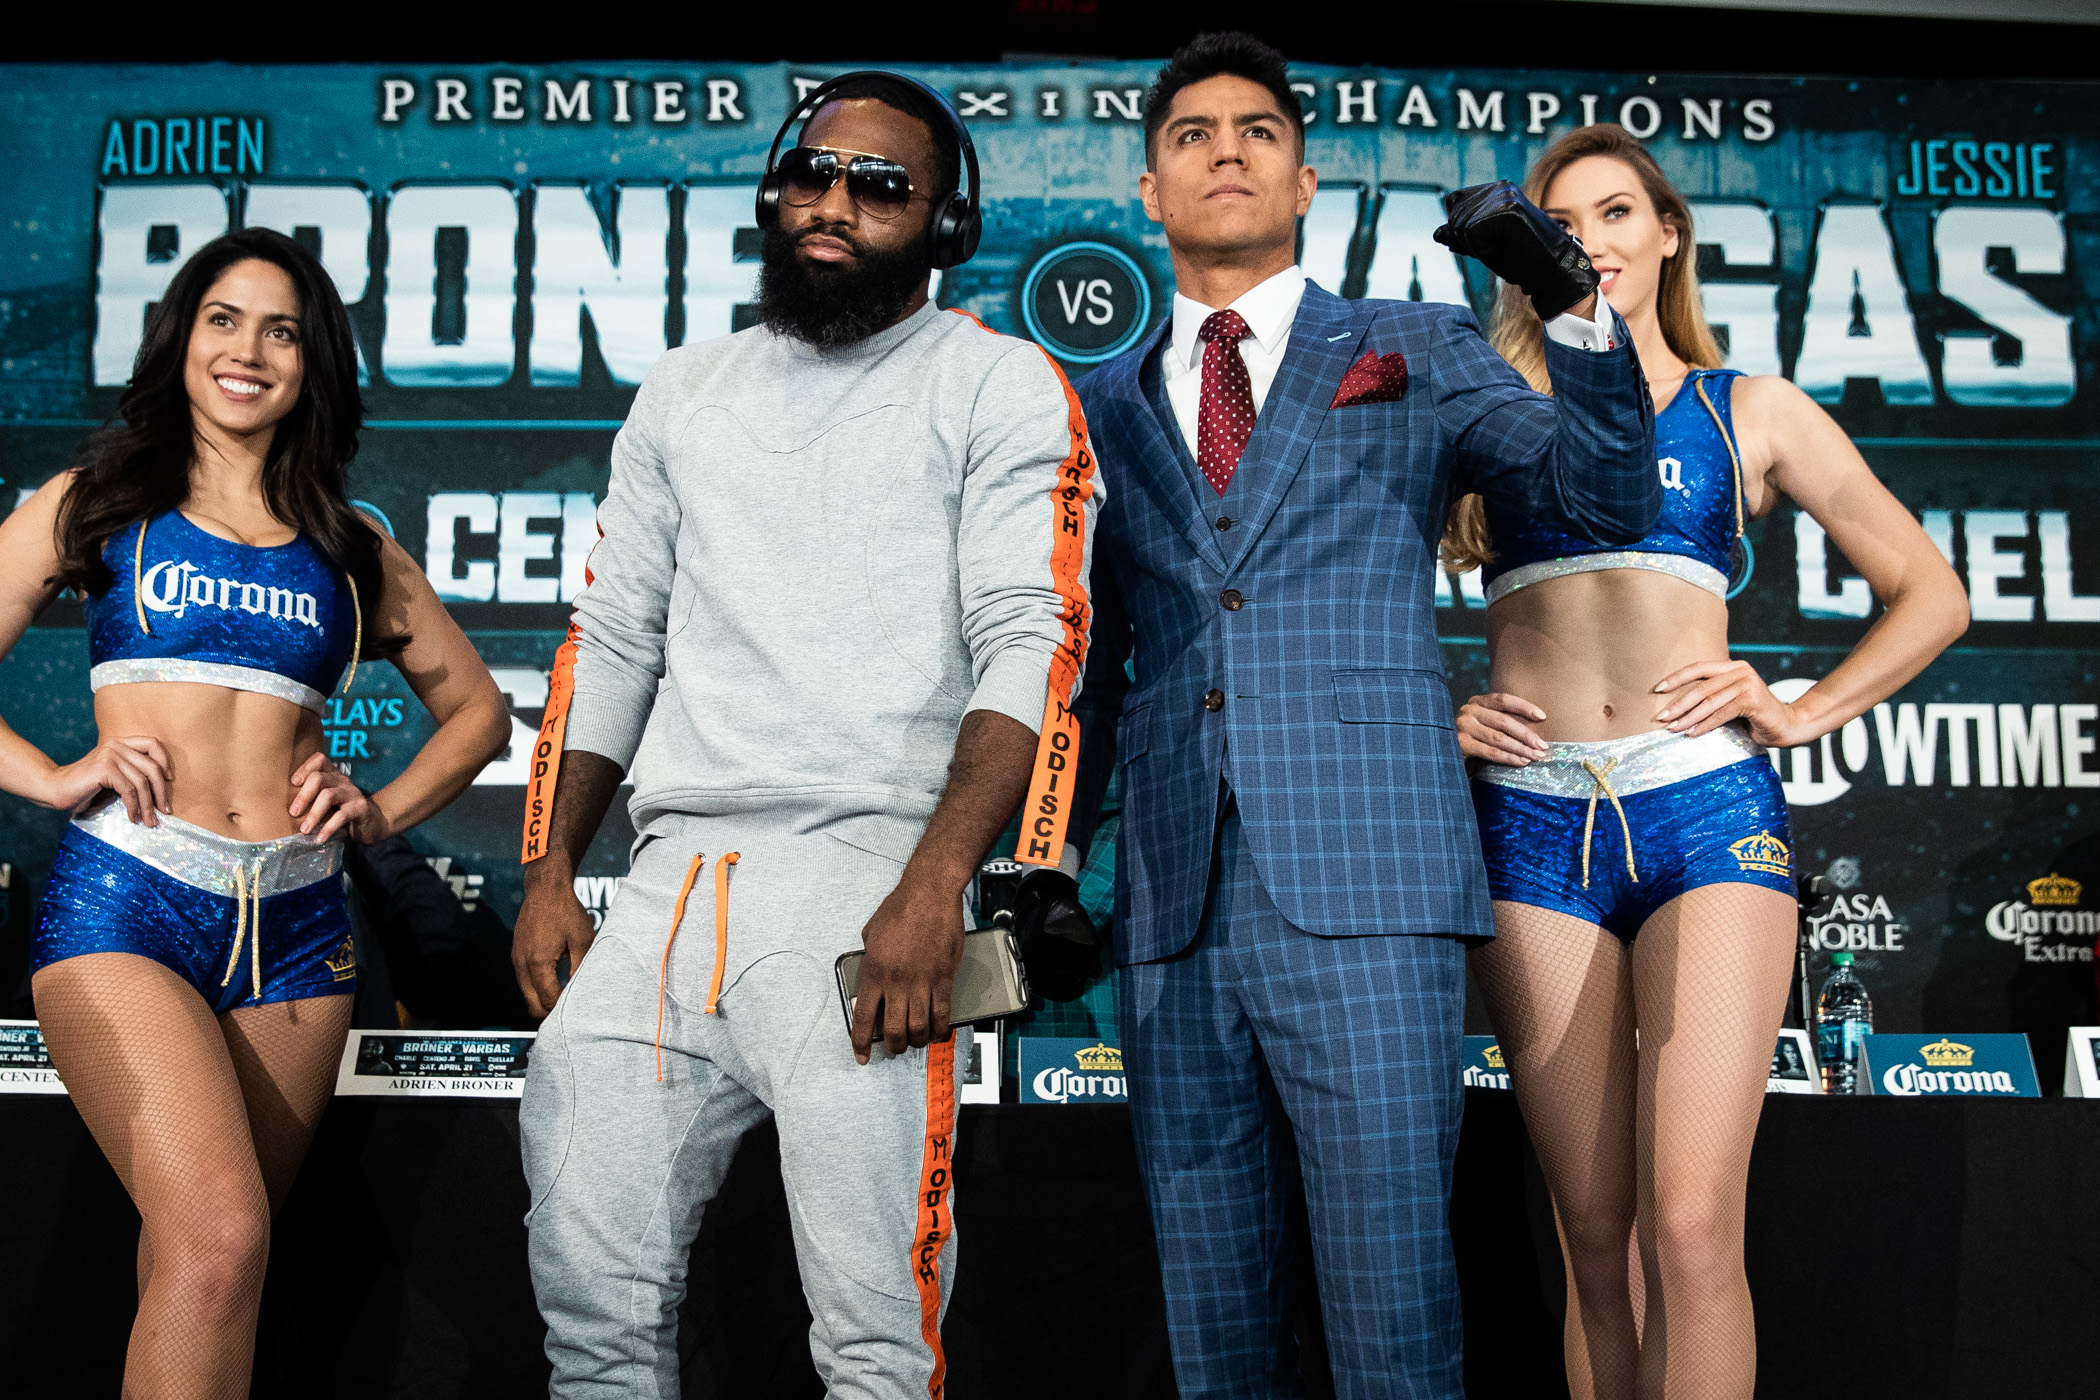 Broner and Vargas frustrated in draw